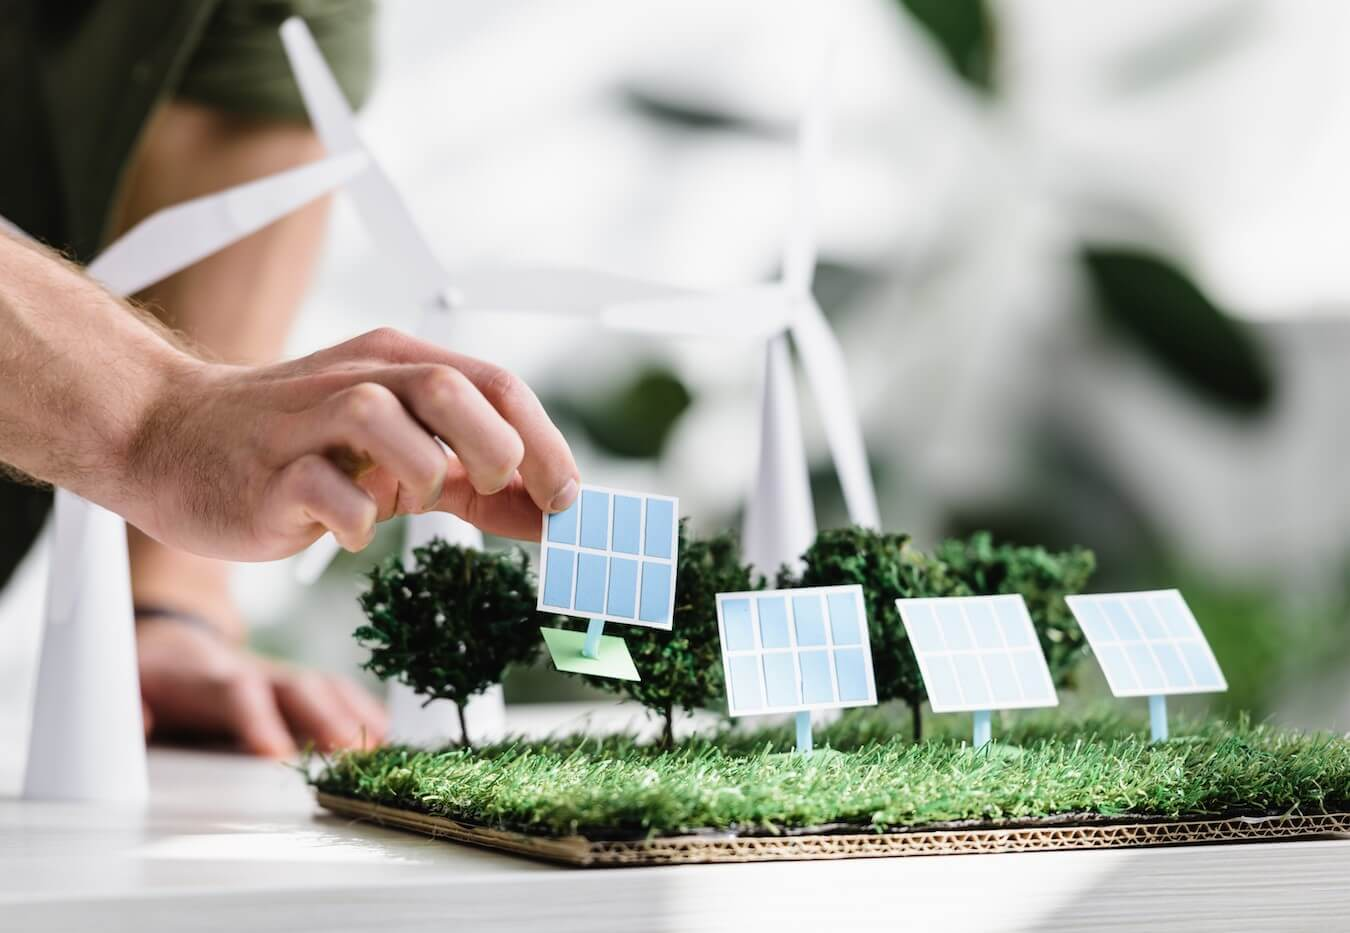 Learn More About Solar Panels